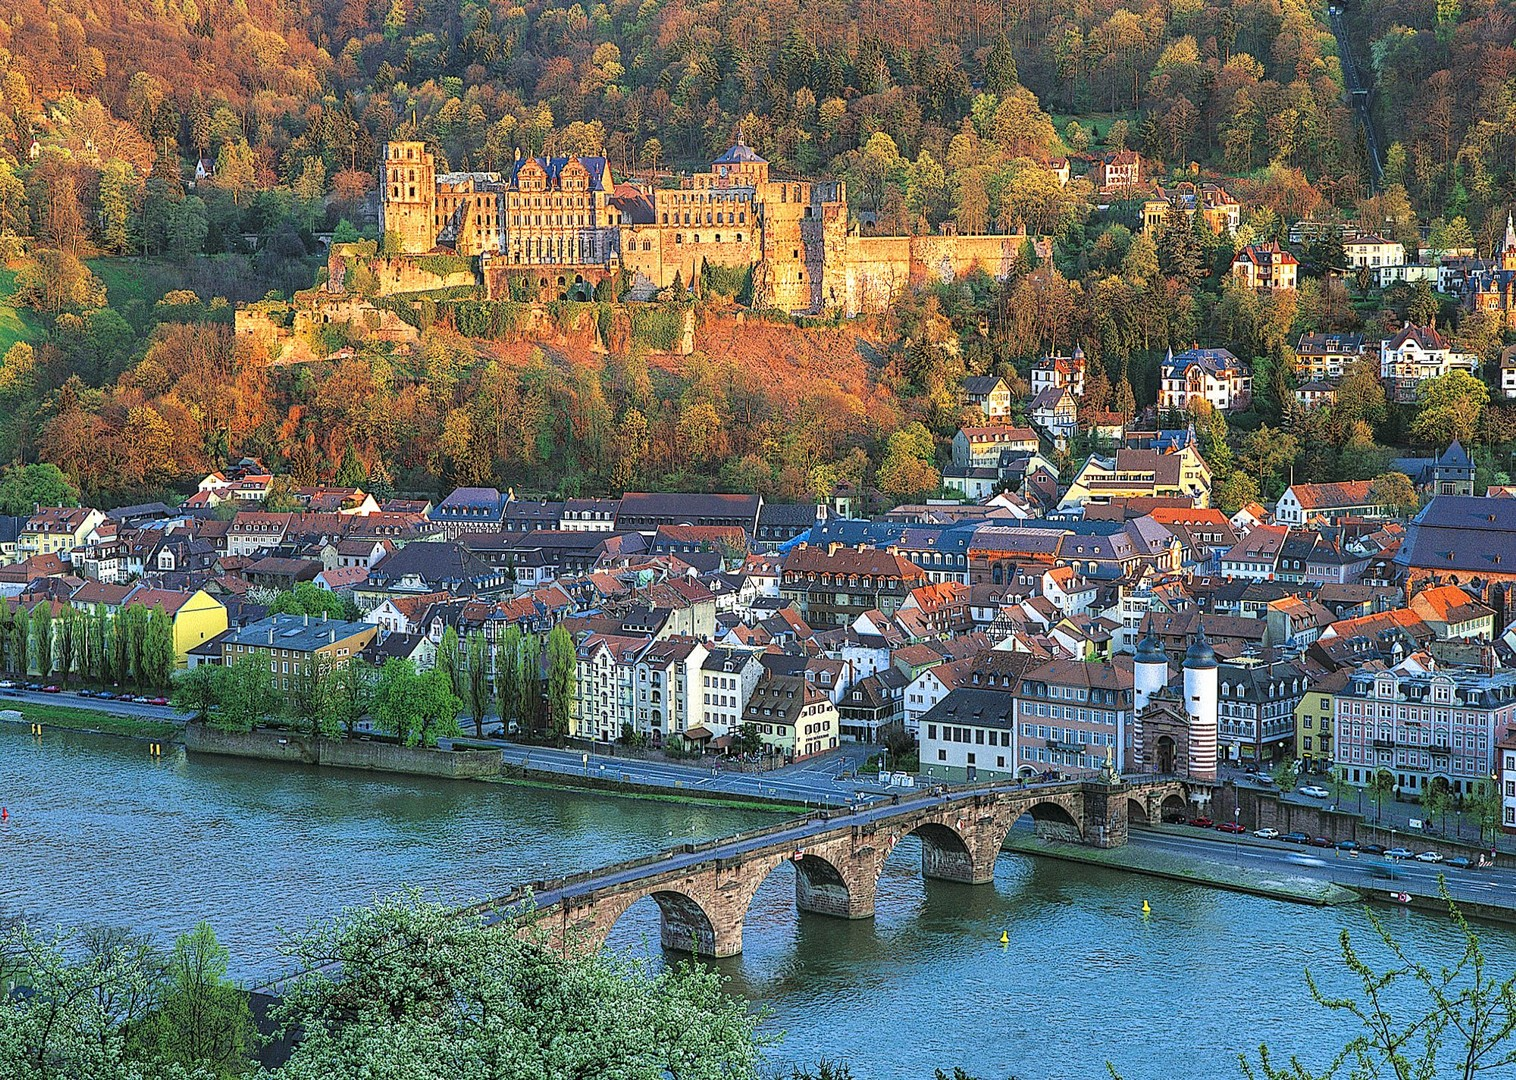 eb-rein-radweg-strassburg-mainz-heidelberg-16_28598121276_o-2-2.jpg - Germany and France - The Rhine Valley - Self-Guided Leisure Cycling Holiday - Leisure Cycling